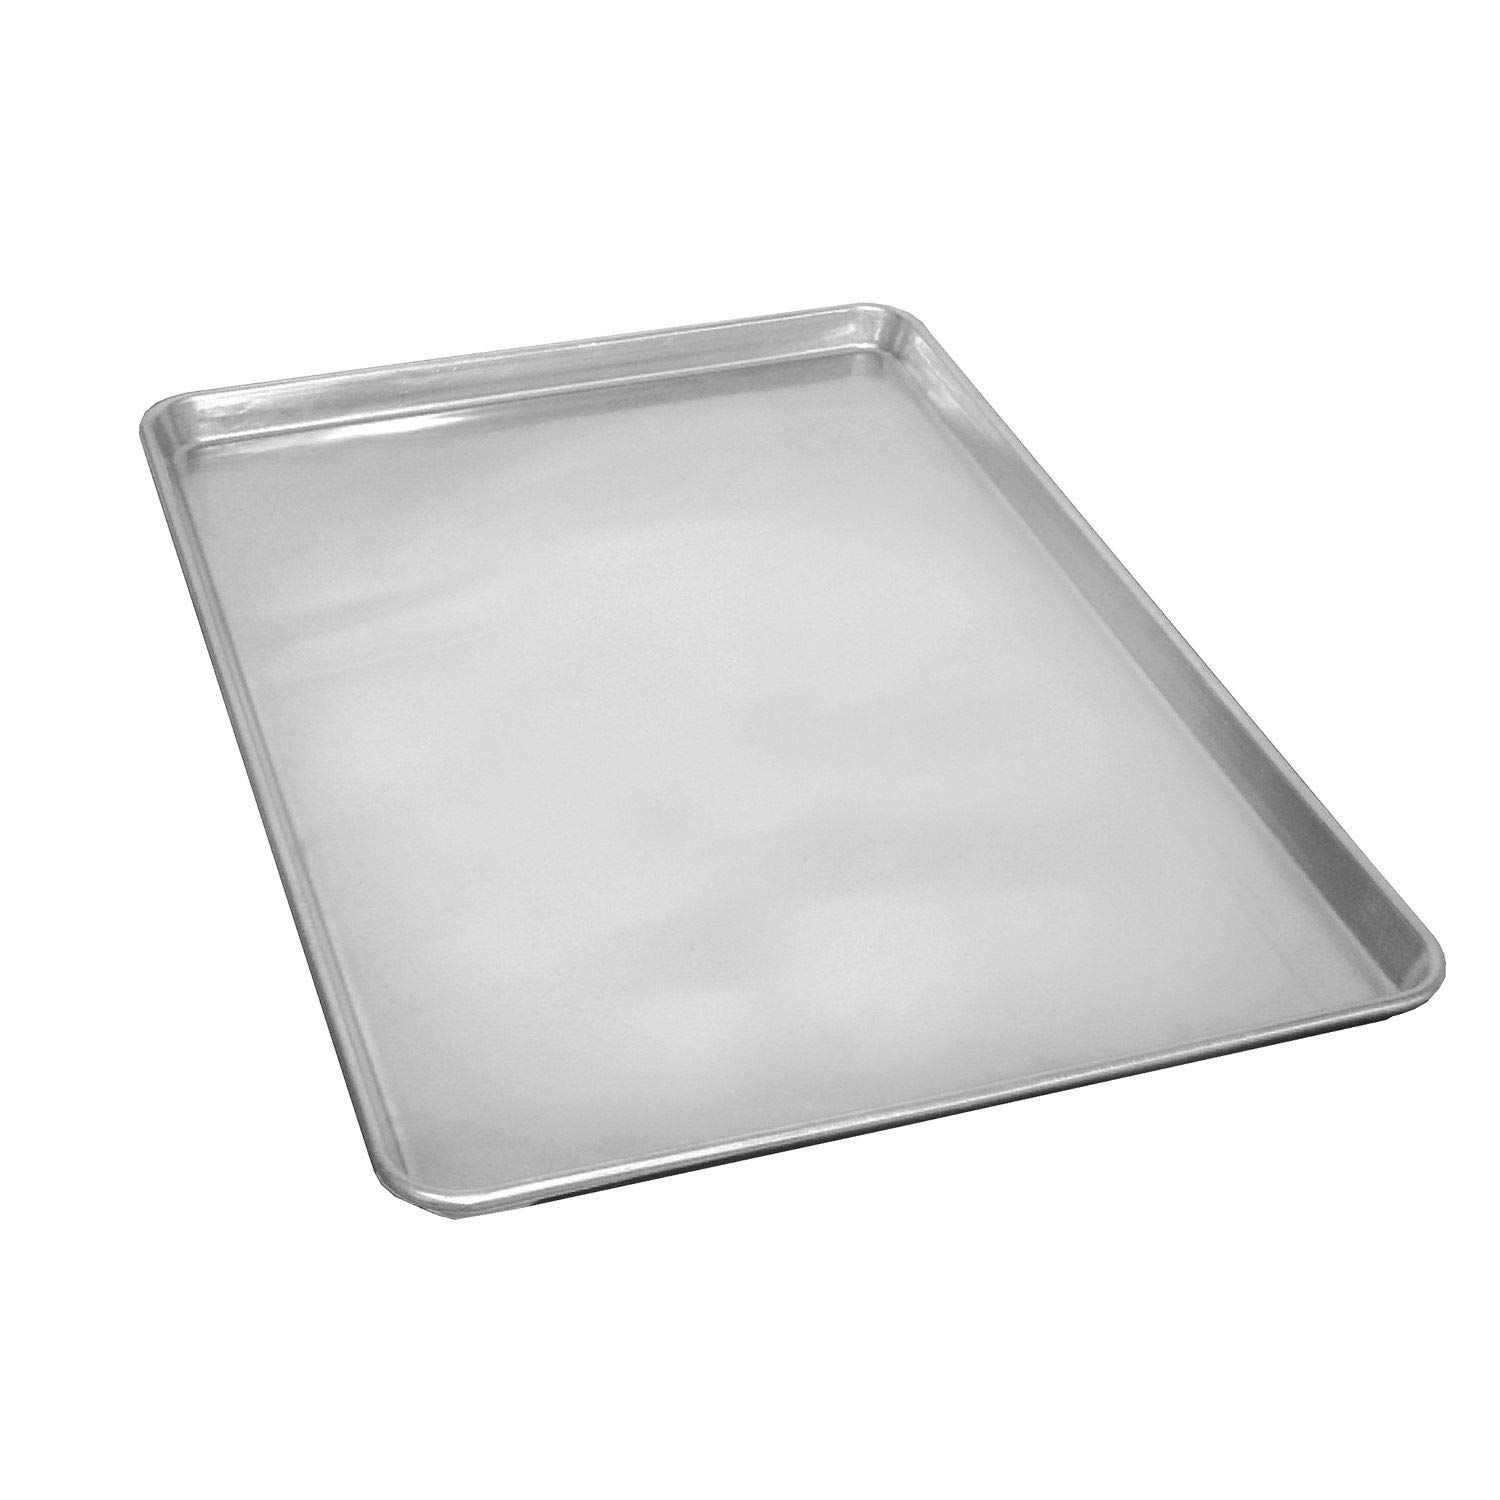 Excellanta C 18 X 26 Full Size Aluminum Sheet Pan 16 Gauge Read More Reviews Of The Product By Visiting The Sheet Pan Distilling Equipment Aluminium Sheet